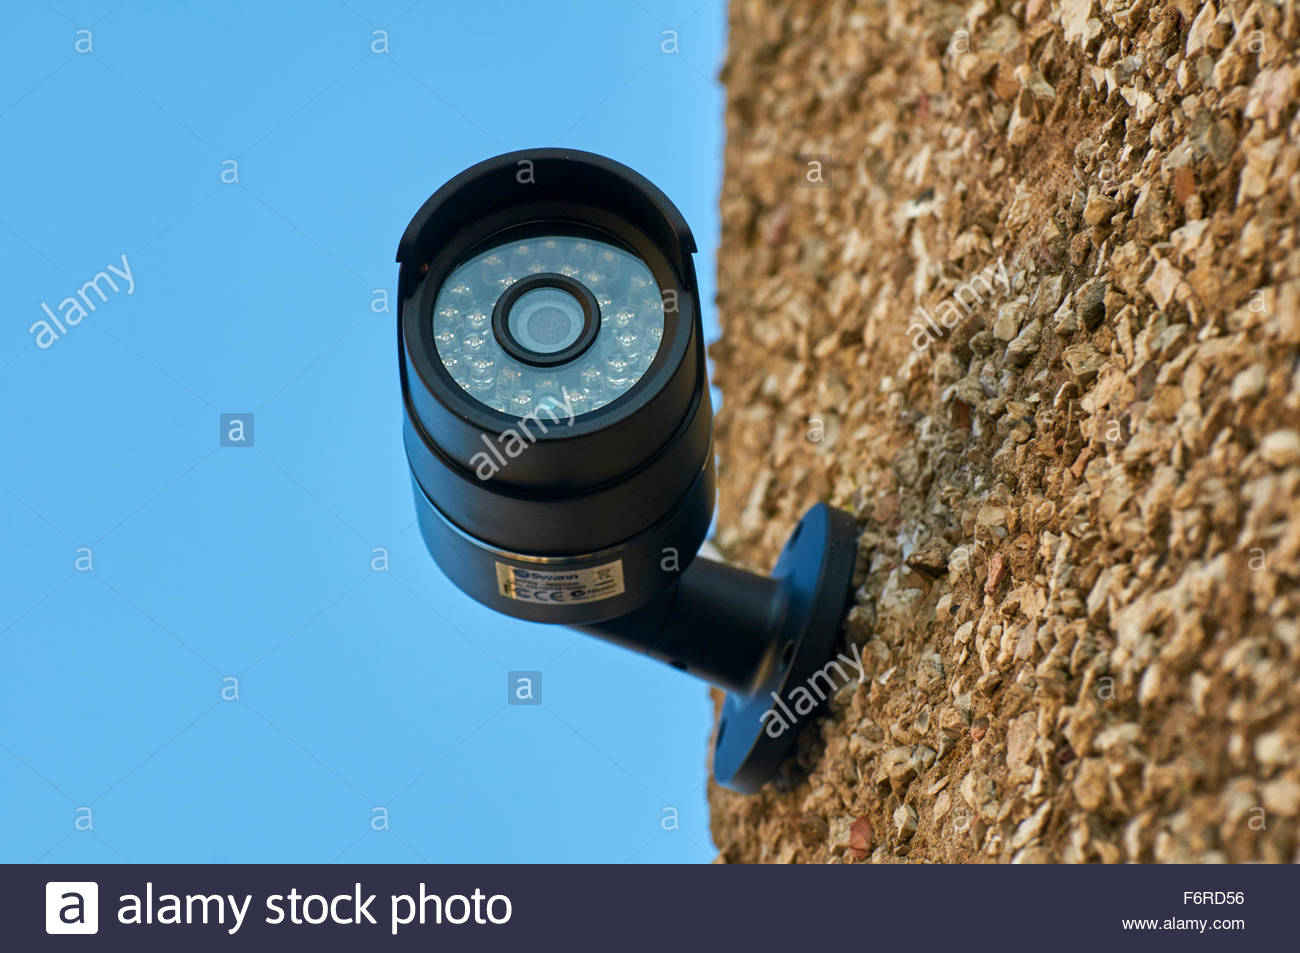 Close up of a wall mounted home security cctv surveillance monitoring camera system - Stock Image